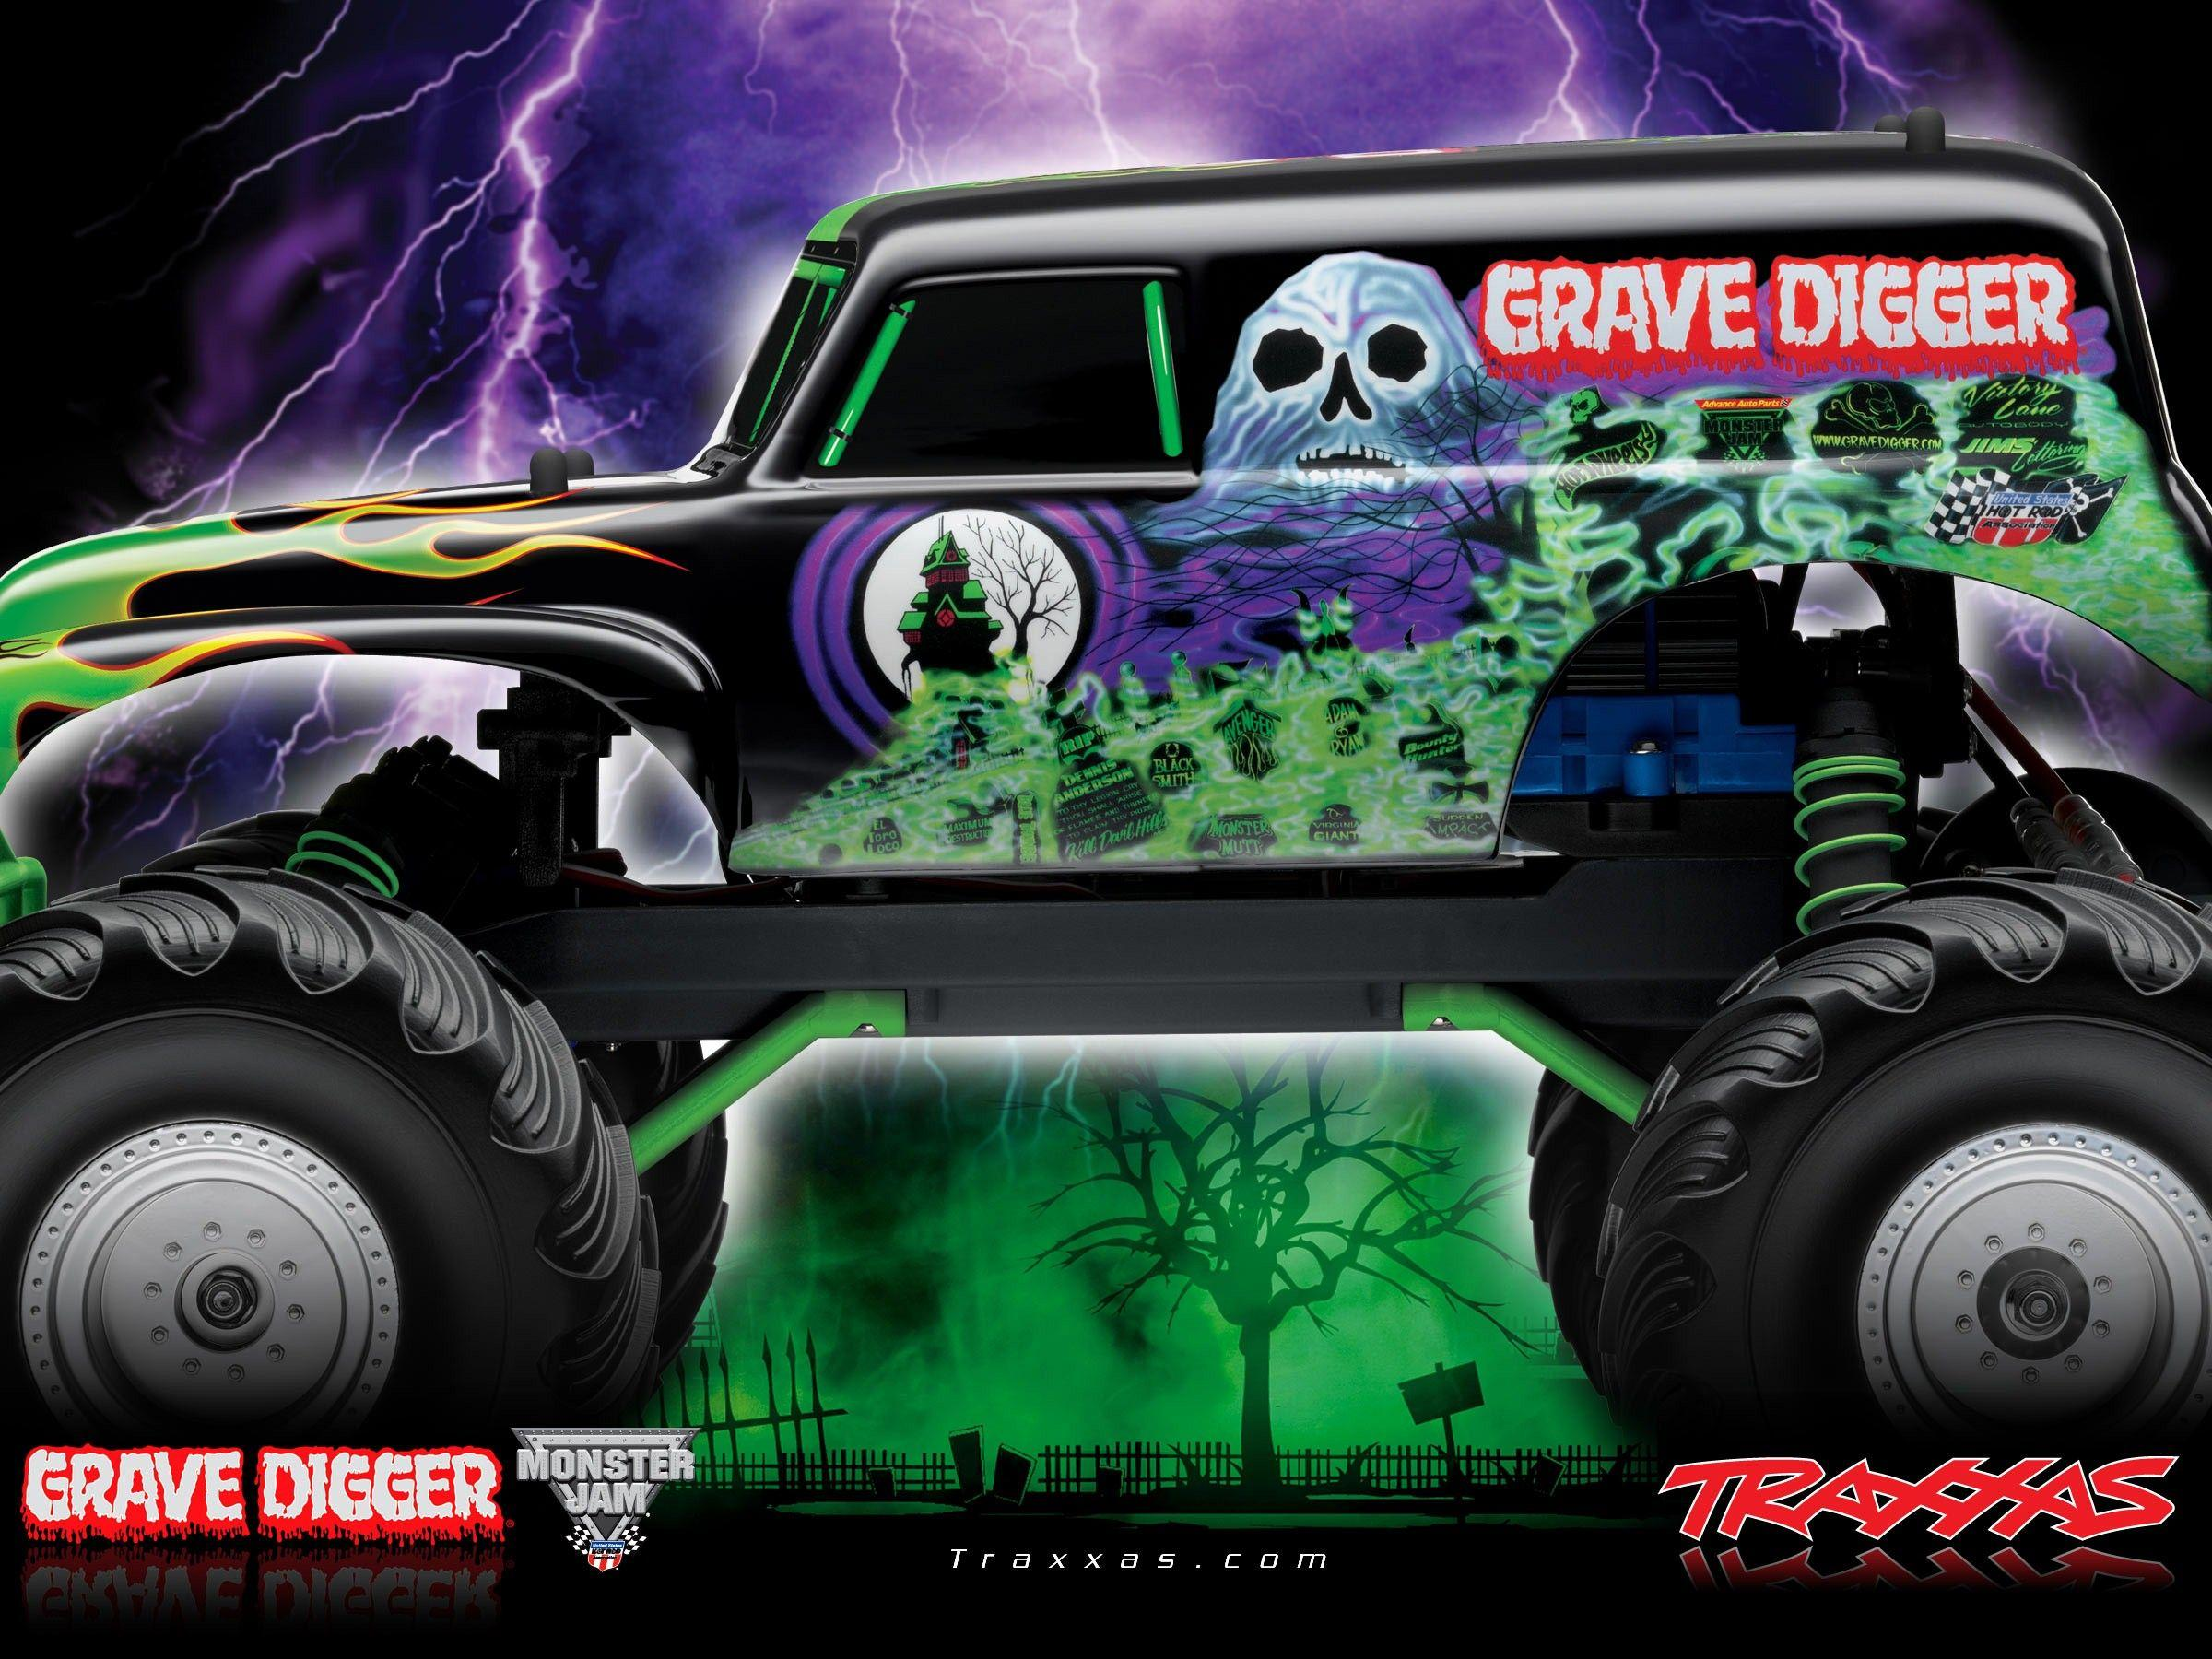 Drawn truck grave digger monster truck - Pencil and in color drawn ...